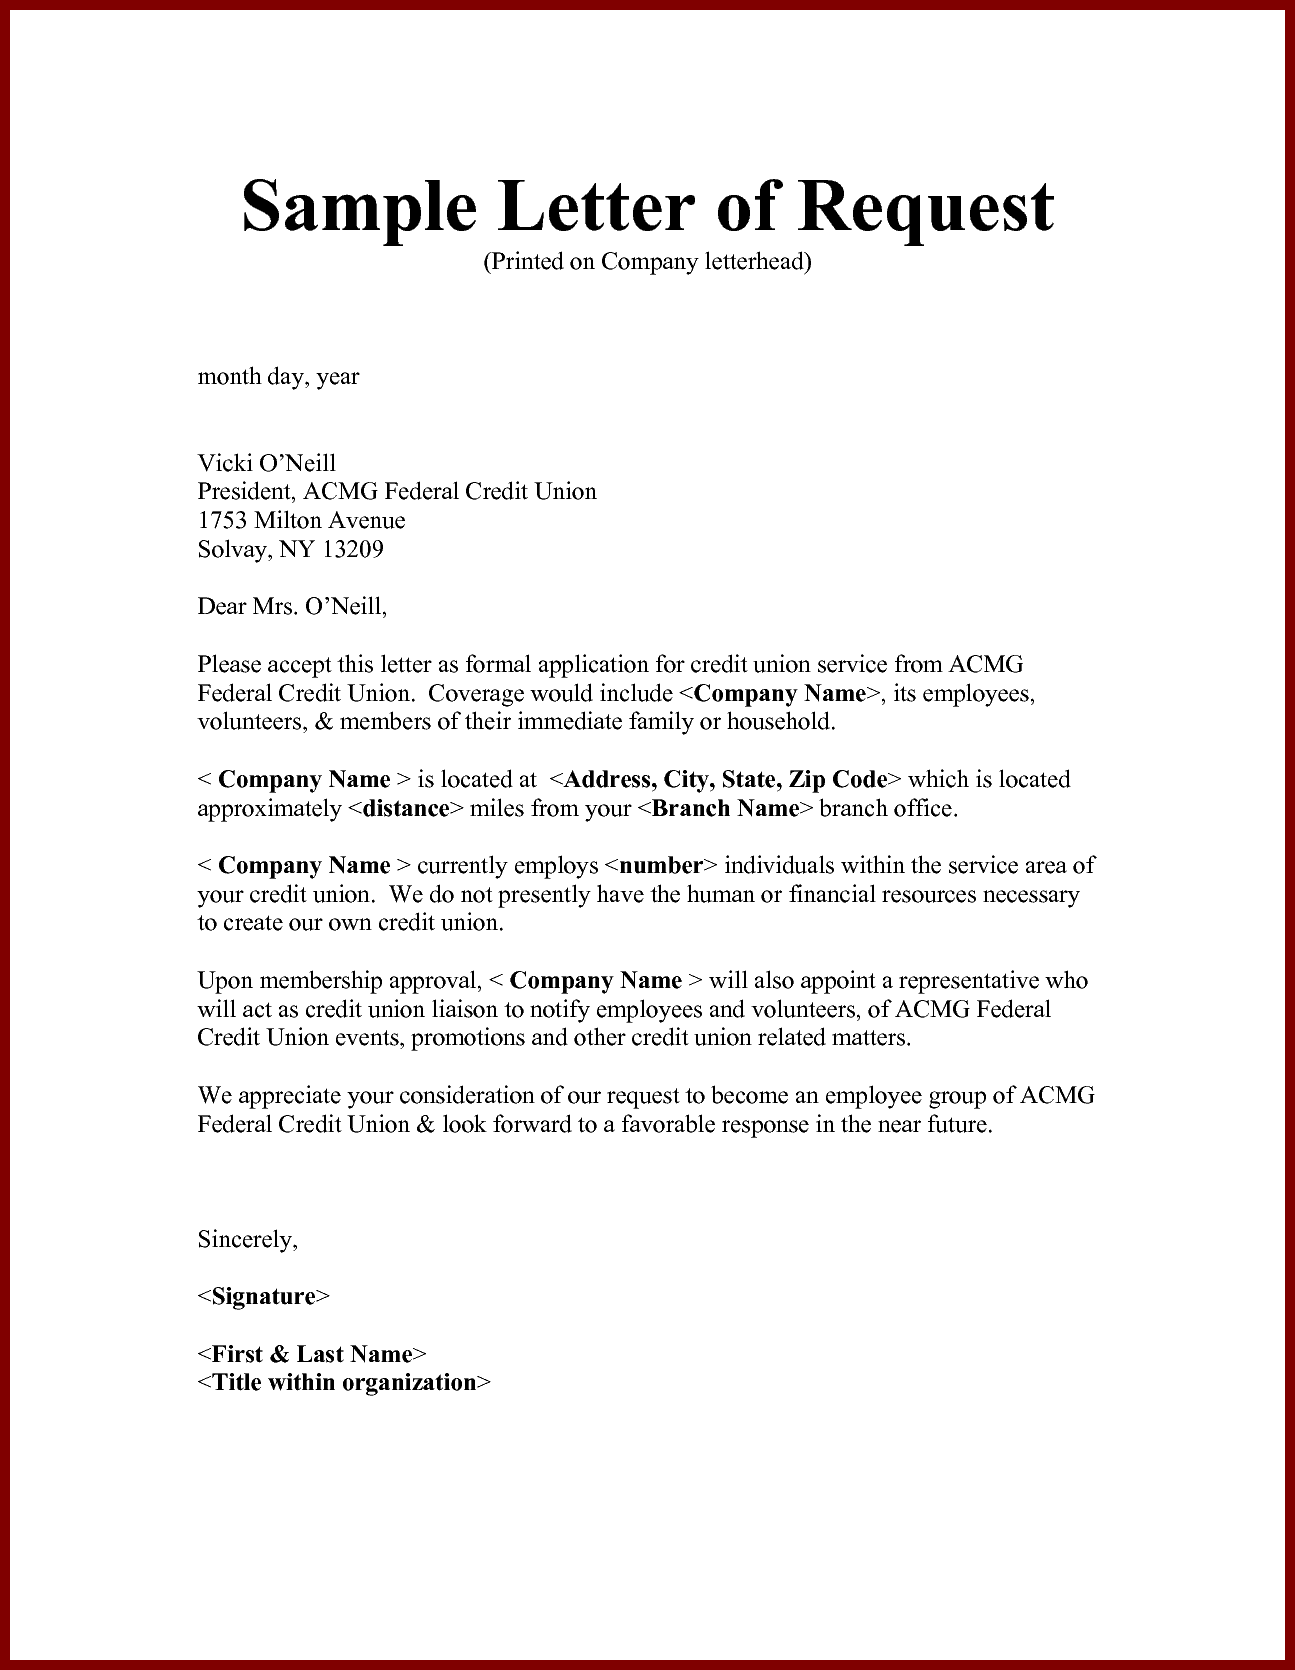 Application letter format for maternity leave college principal application letter format for maternity leave college principal altavistaventures